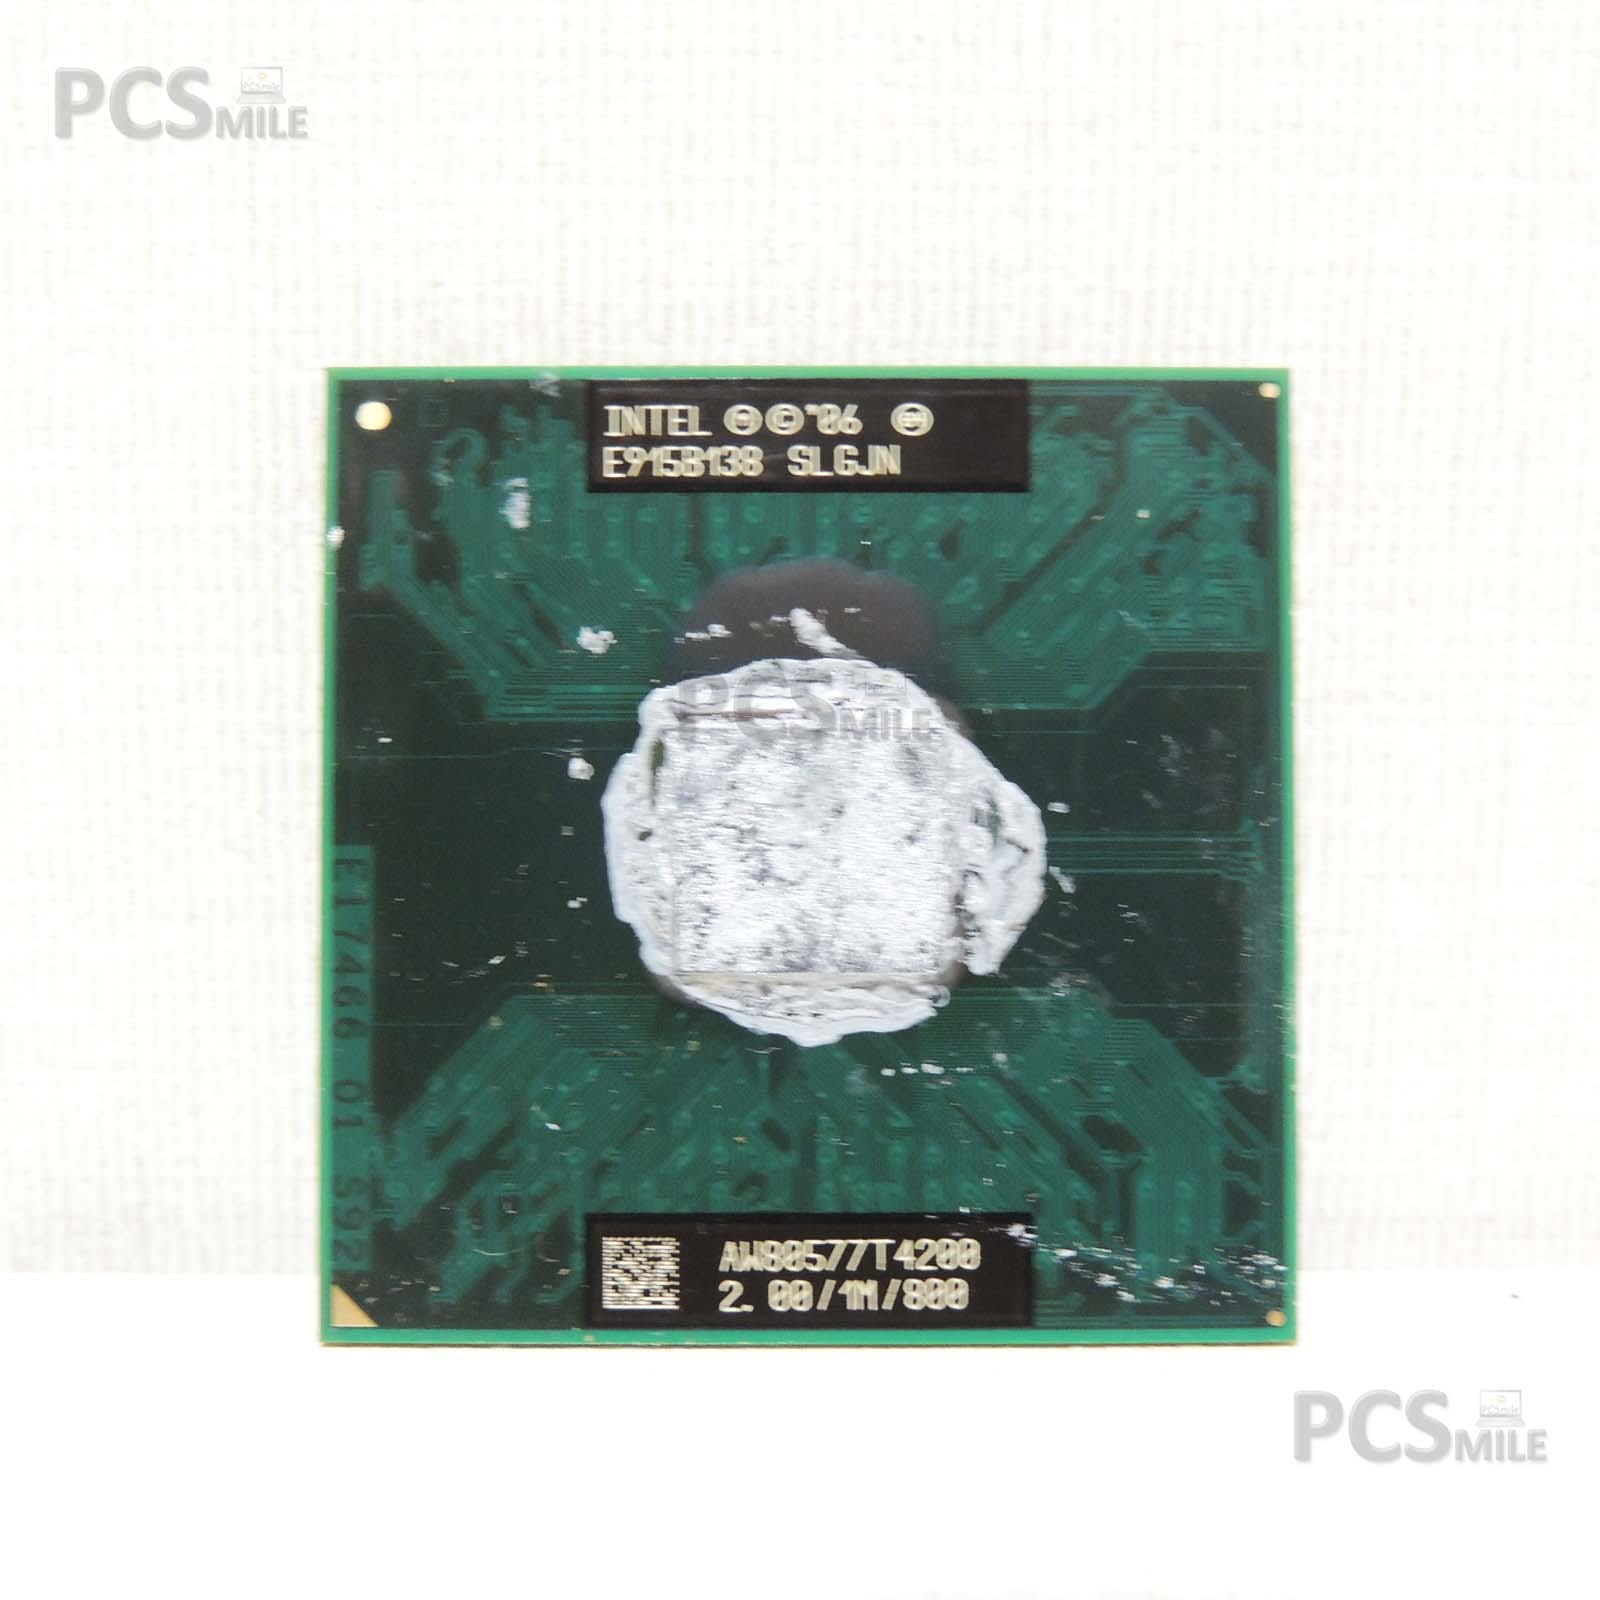 Intel Core 2 Duo AW80577T4200 CPU NOTEBOOK PROCESSORE 2.00 / 1M / 800 T4200